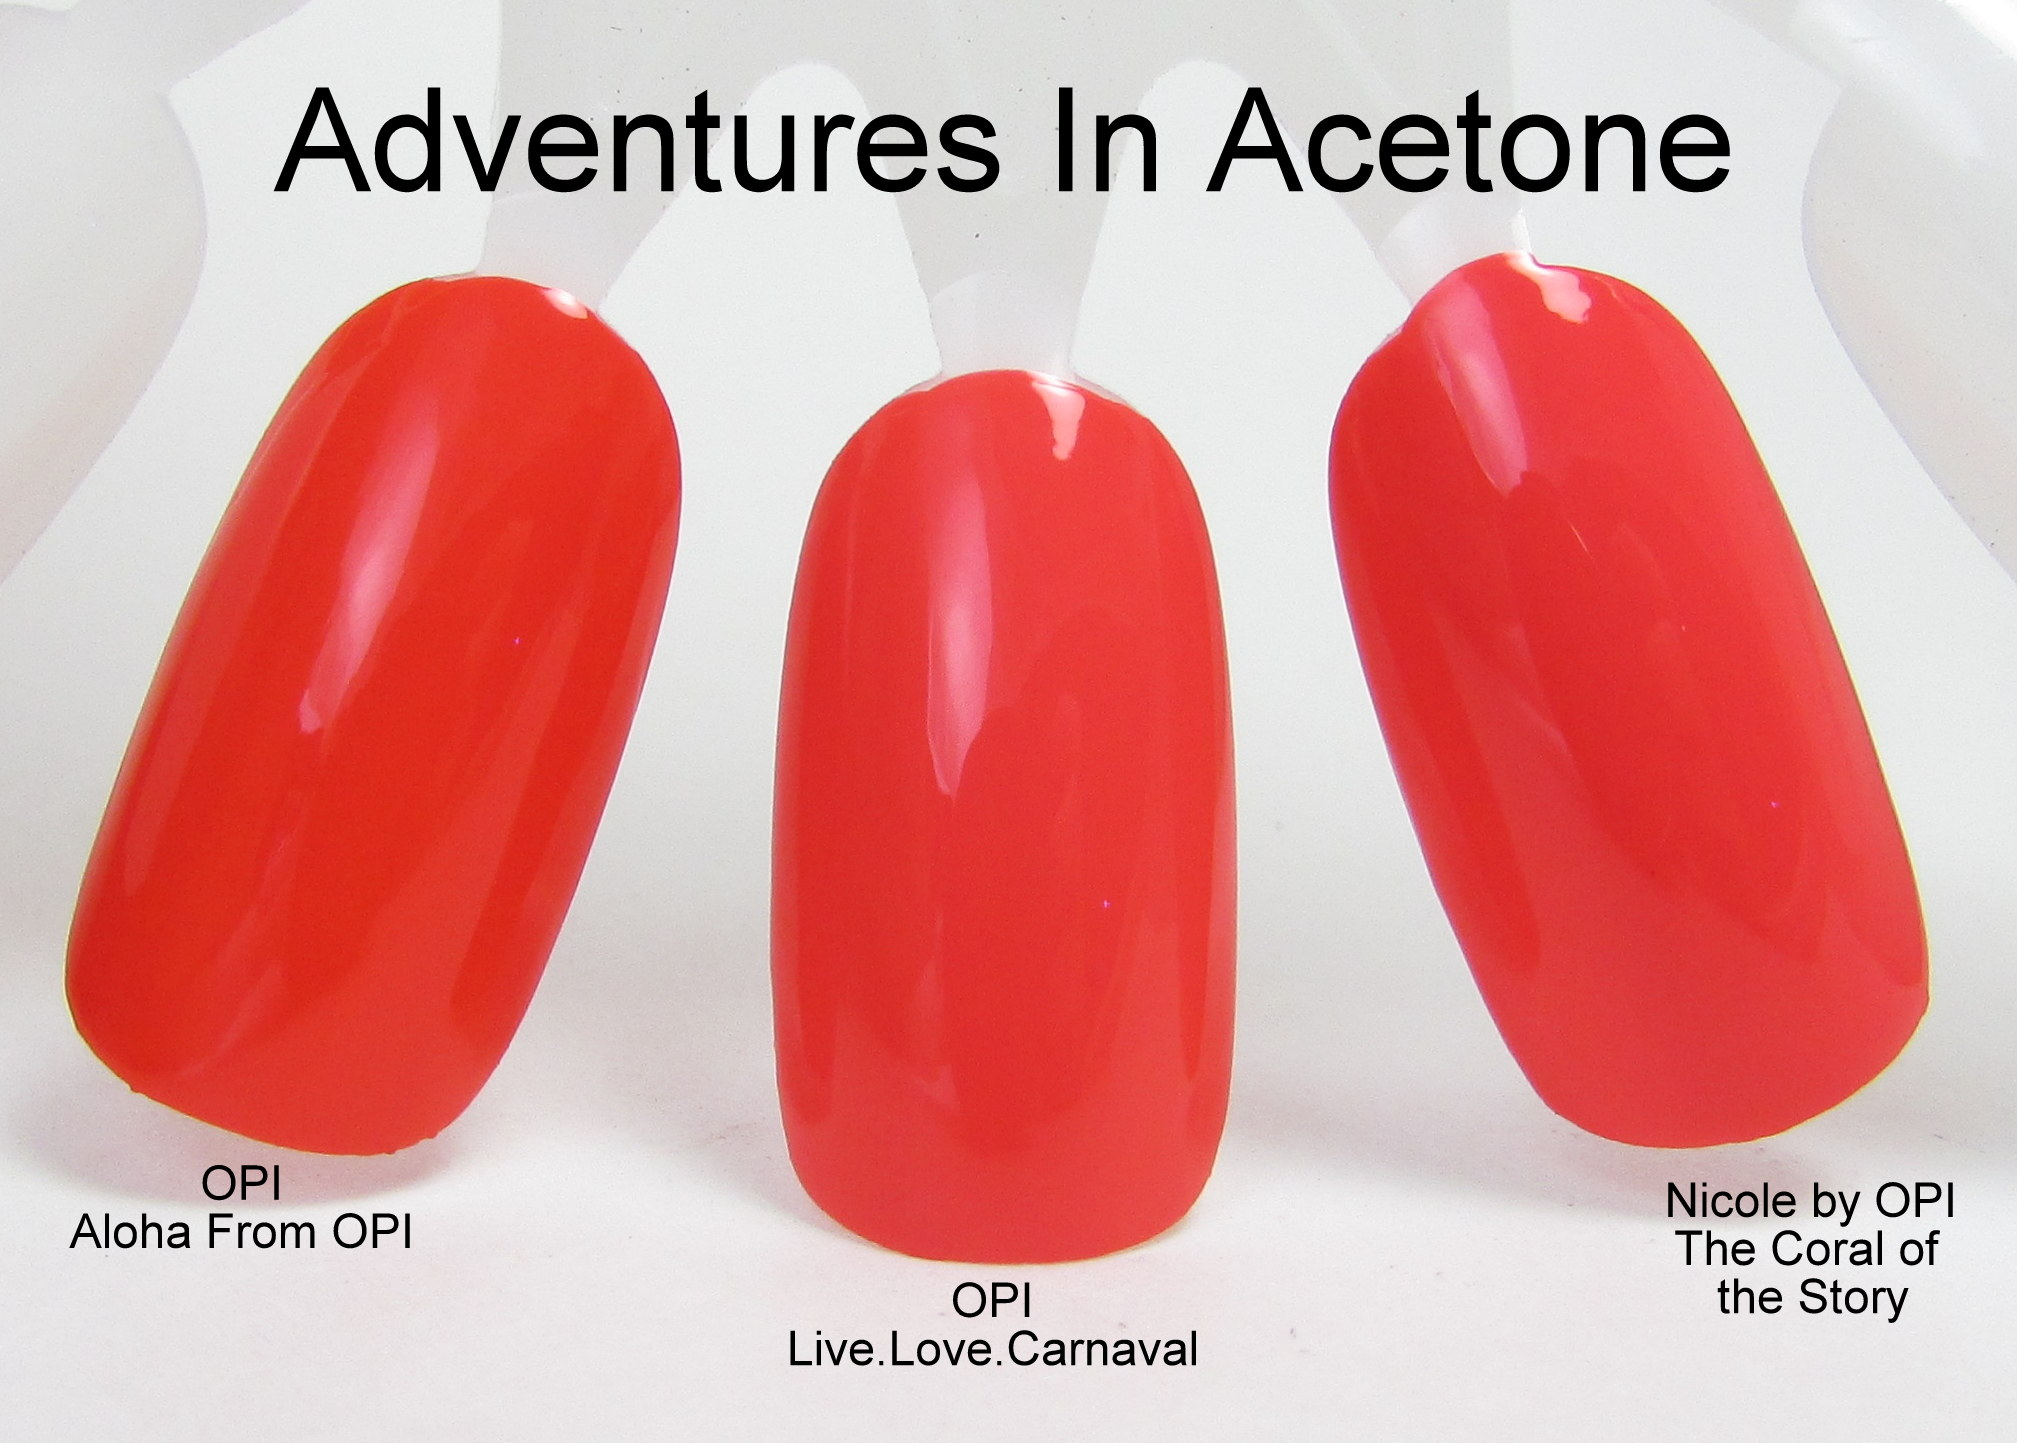 http://adventuresinacetone.com/wp-content/uploads/2015/06/OPI-Aloha-From-OPI-OPI-Live.Love_.Carnaval-and-Nicole-by-OPI-The-Coral-of-the-Story-Comparison-Post-2.jpg